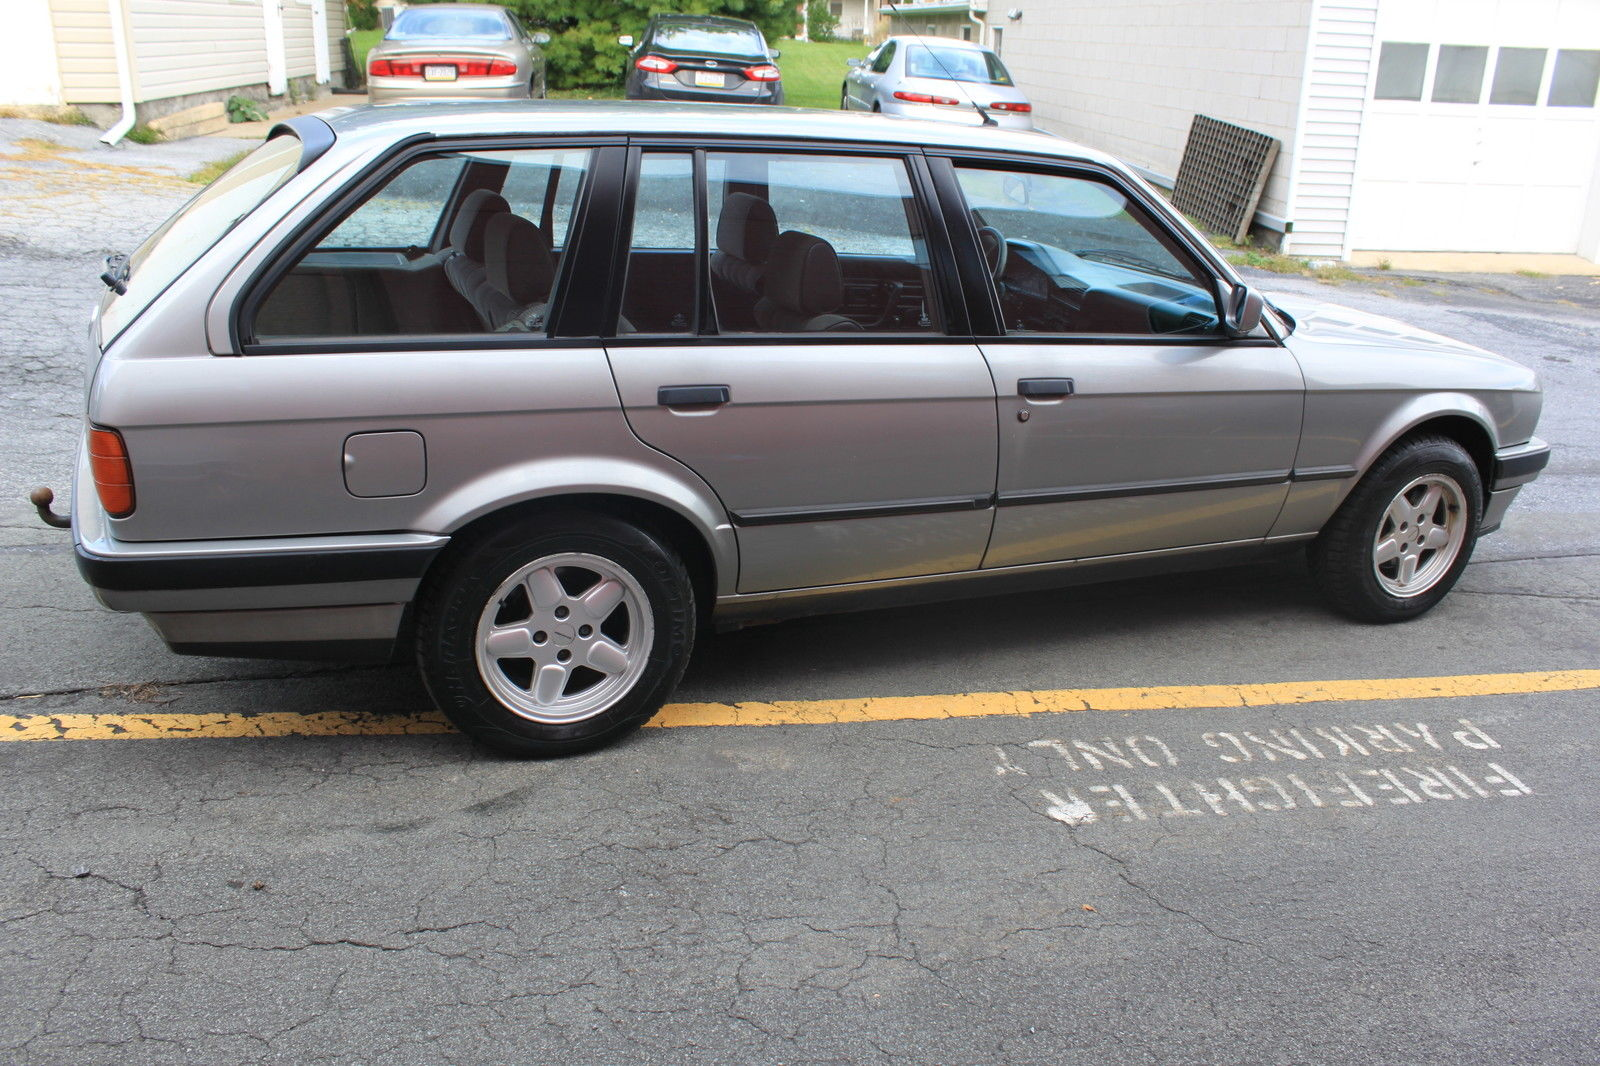 BMW E30 wagon 318i touring manual 5-speed (318is, 325is, 320i, 325i, 325e,  m3)